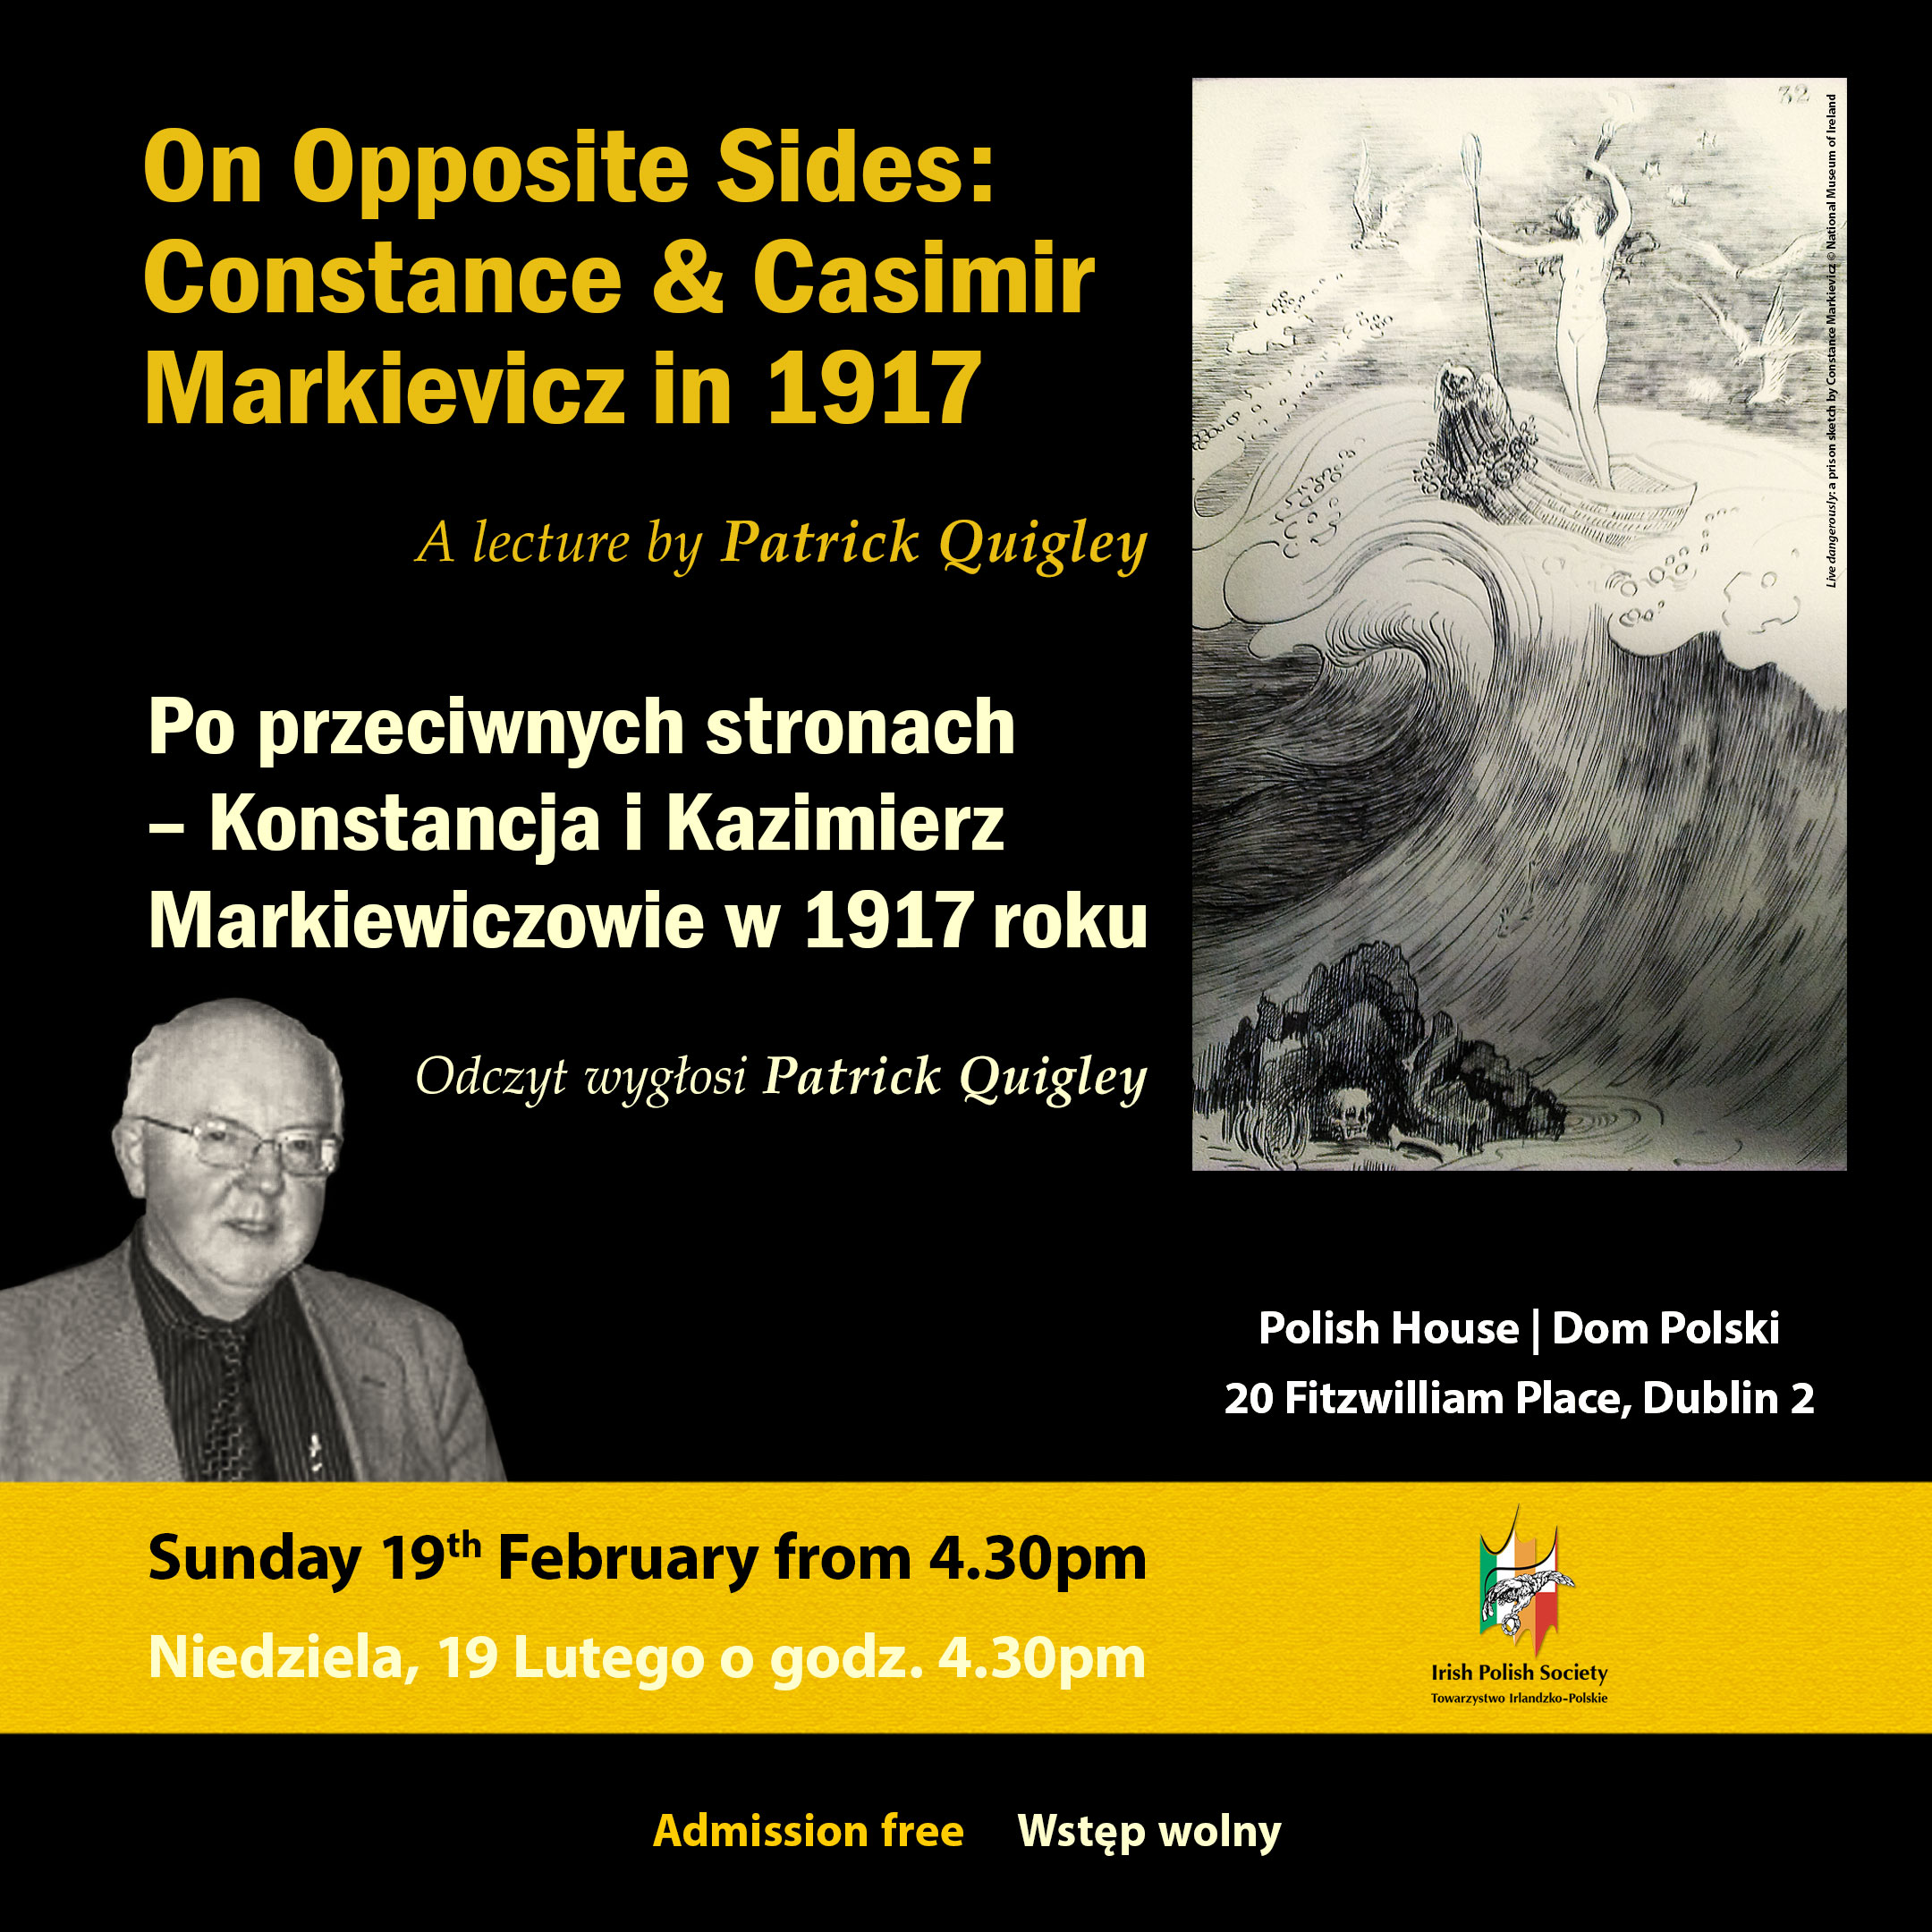 On Opposite Sides:Constance and Casimir Markievicz in 1917. Lecture by Patrick Quigley in Irish Polish Society